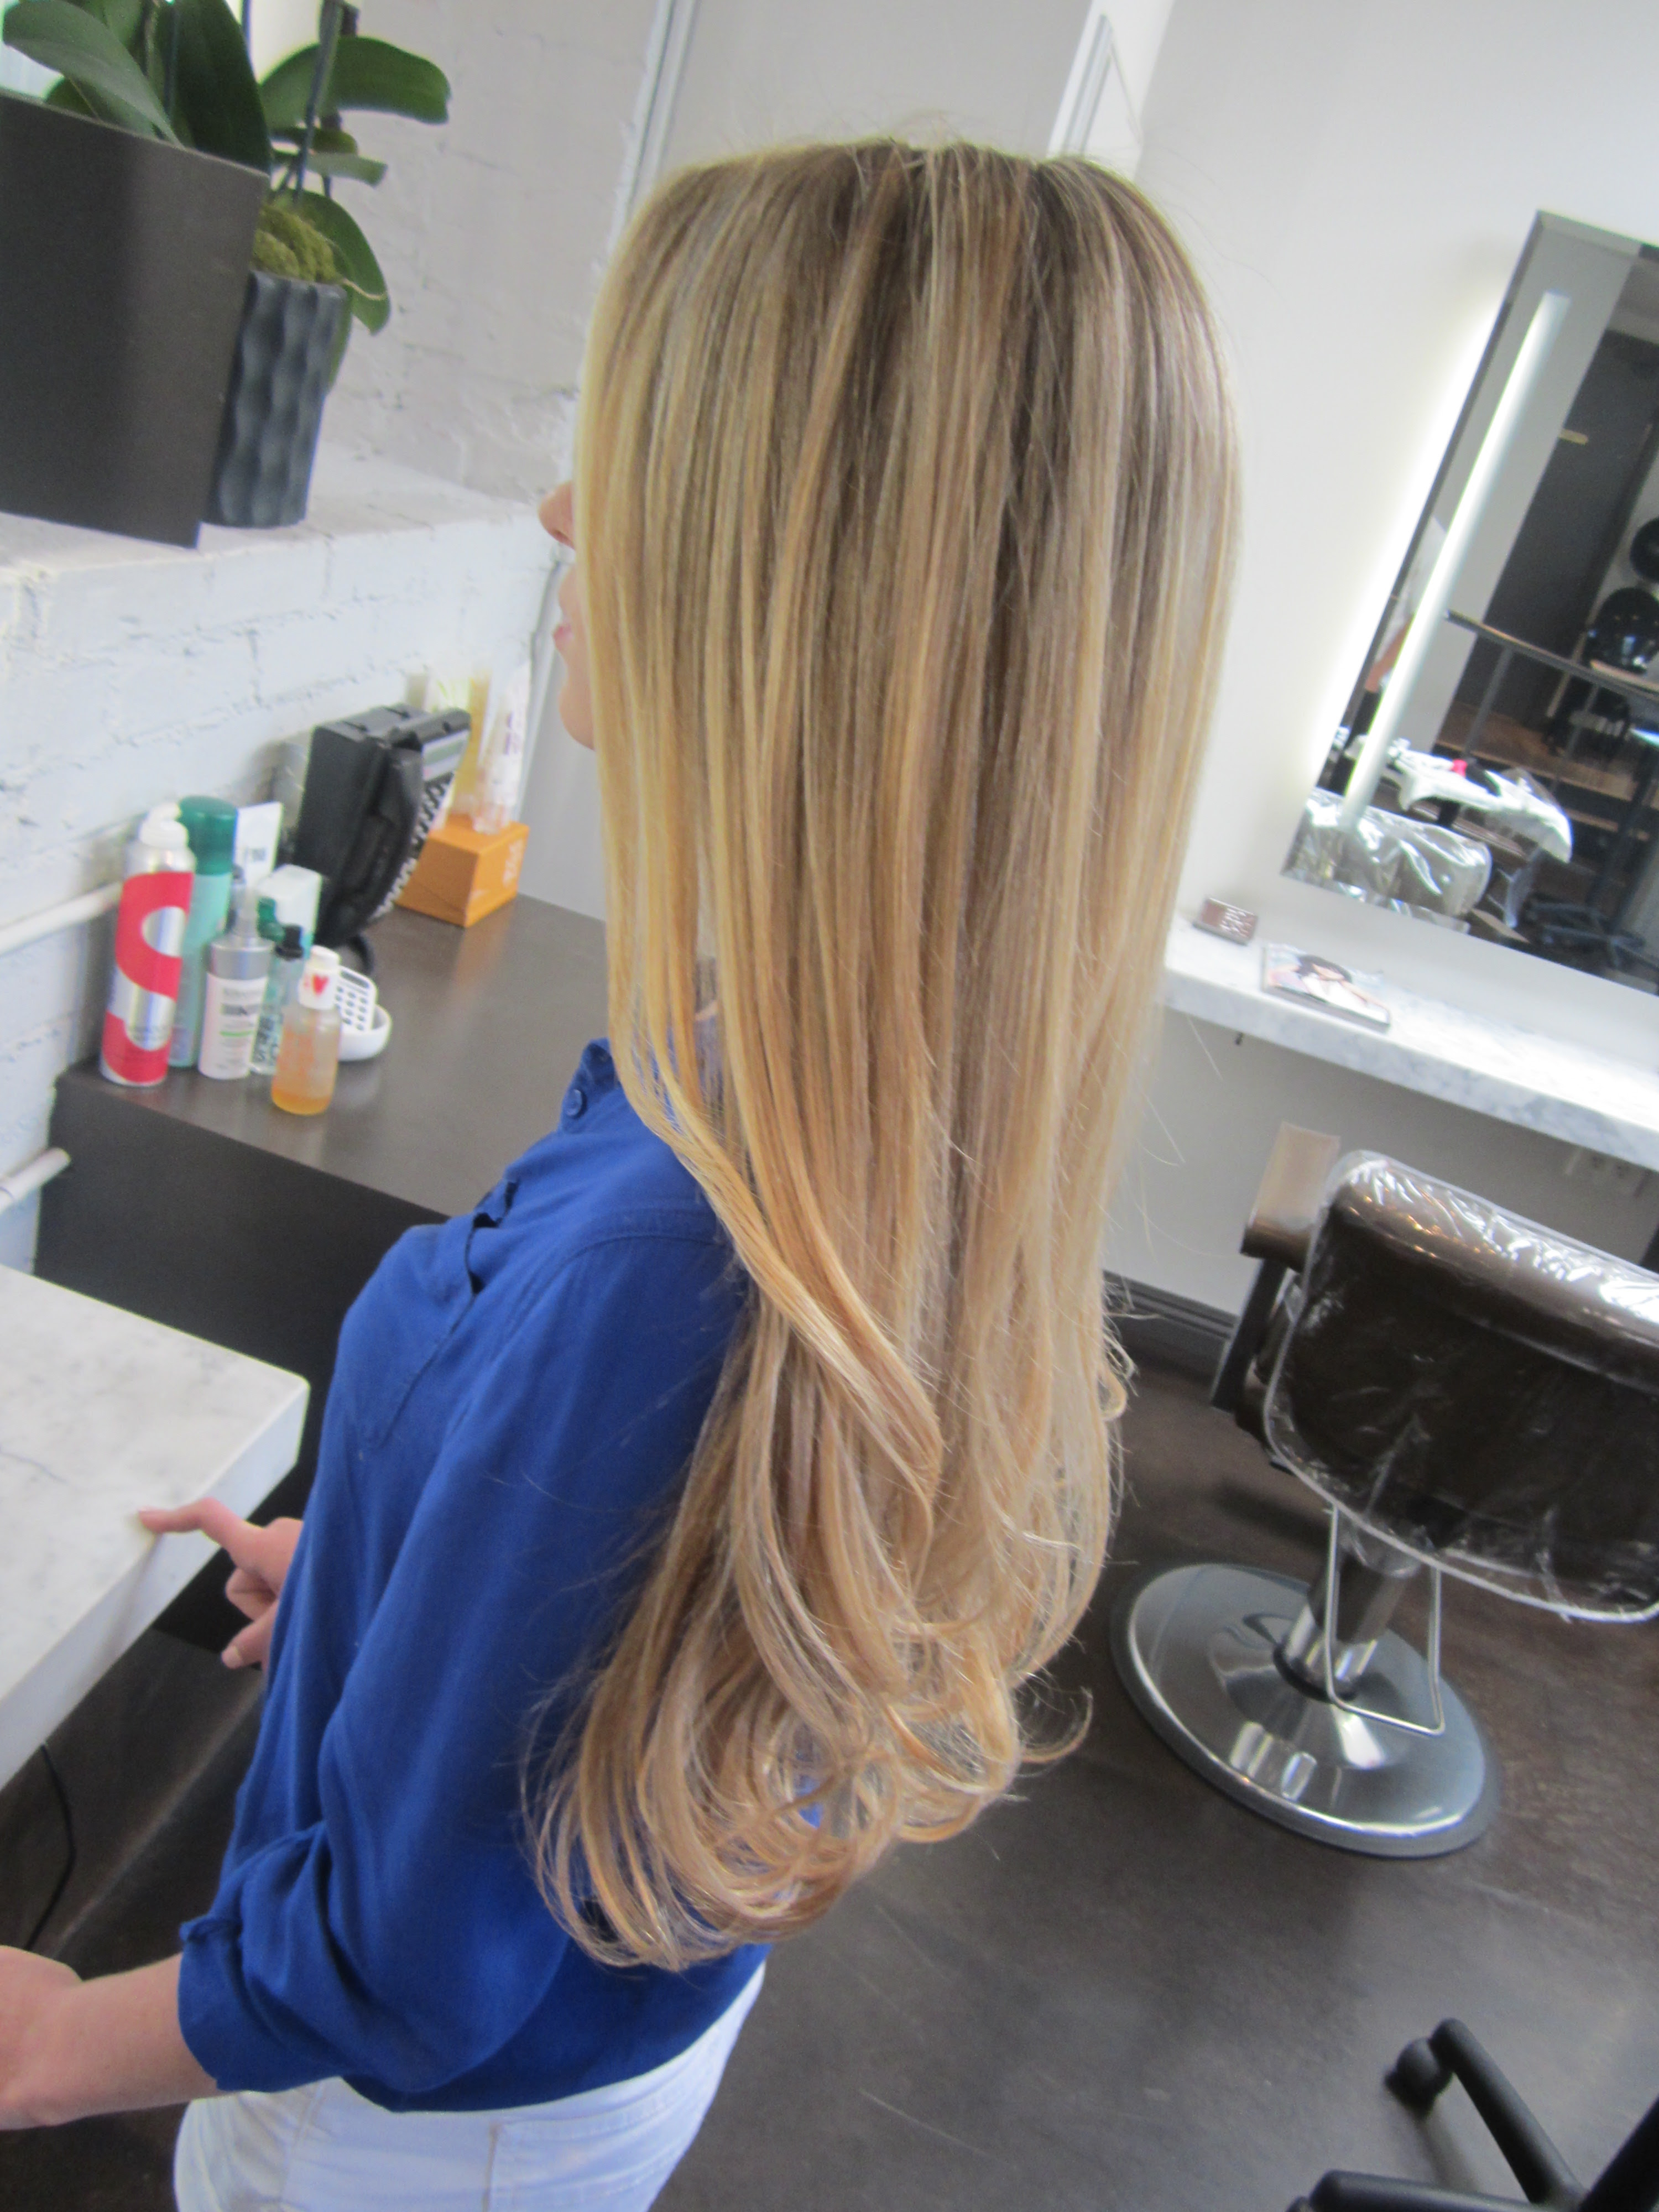 Hair Color Ideas For Blondes Trendy Hairstyles